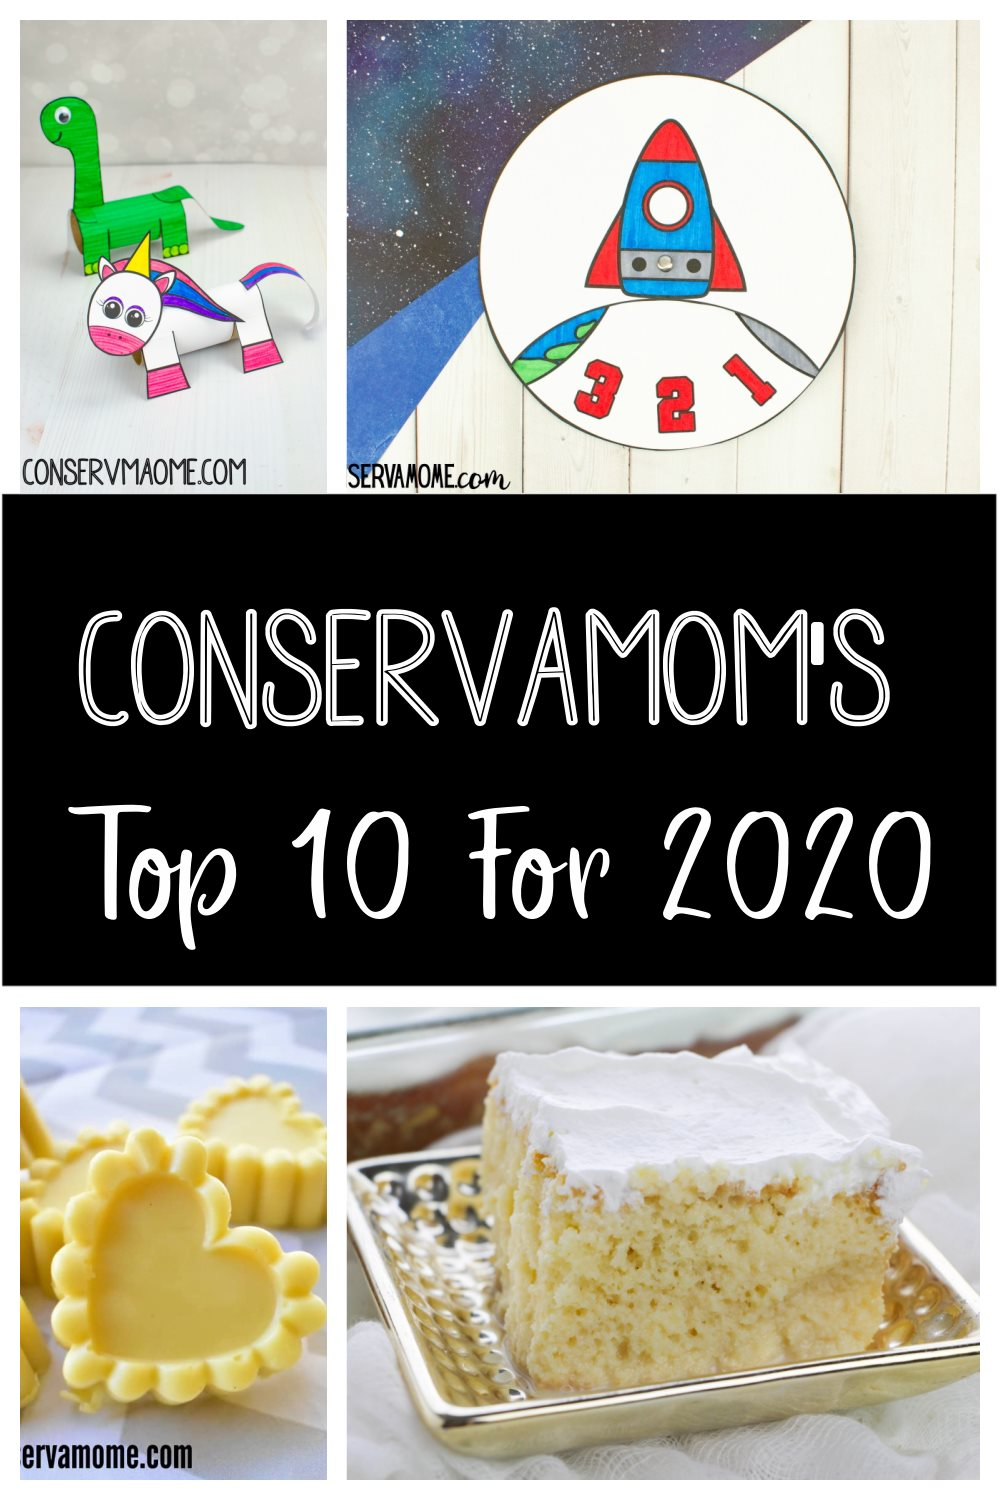 check out Conservamom's Top 10 Posts of 2020.